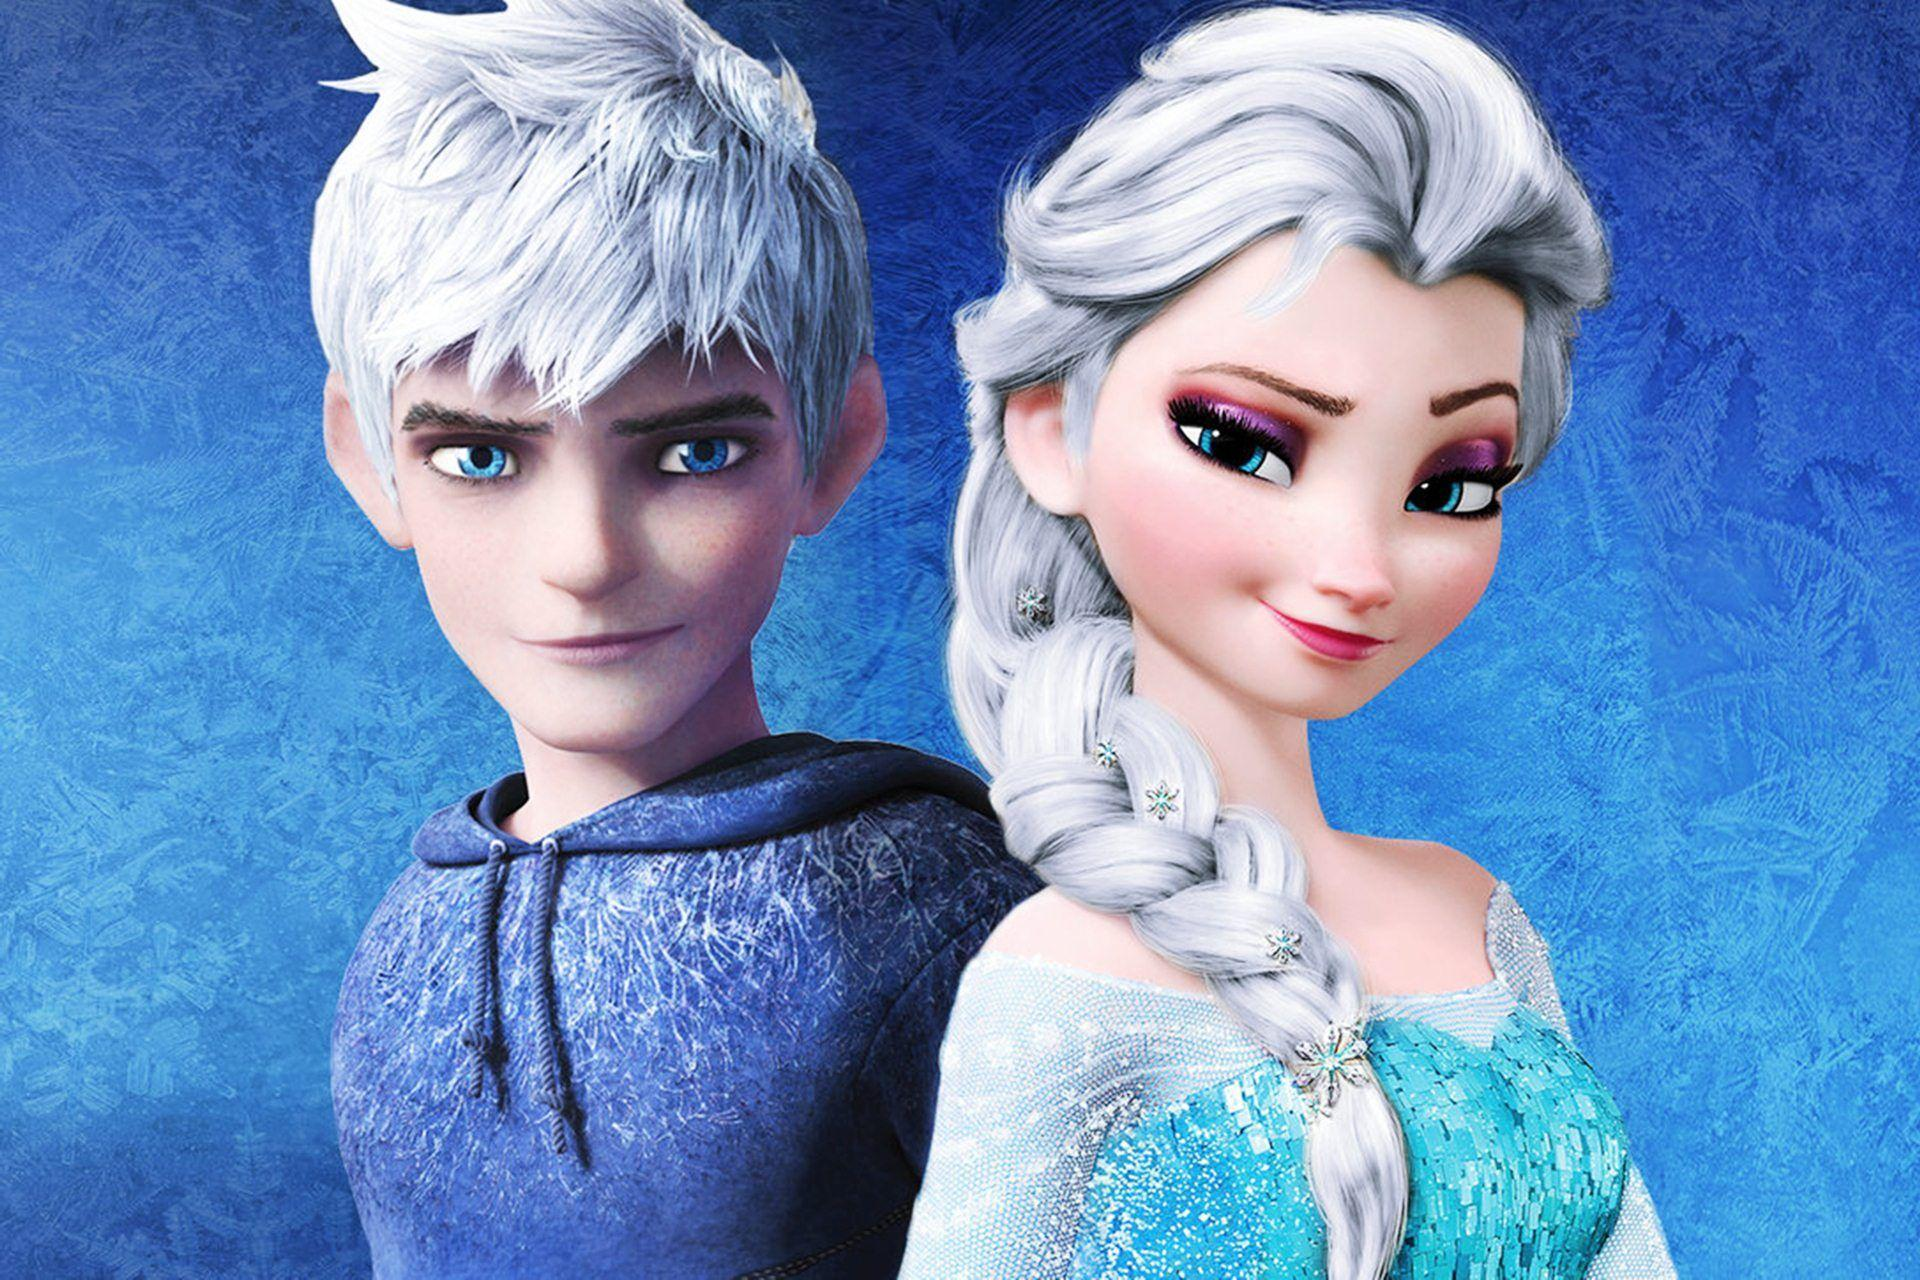 Jack frost wallpapers wallpaper cave elsa and jack frost wallpapers wallpapersafari altavistaventures Choice Image